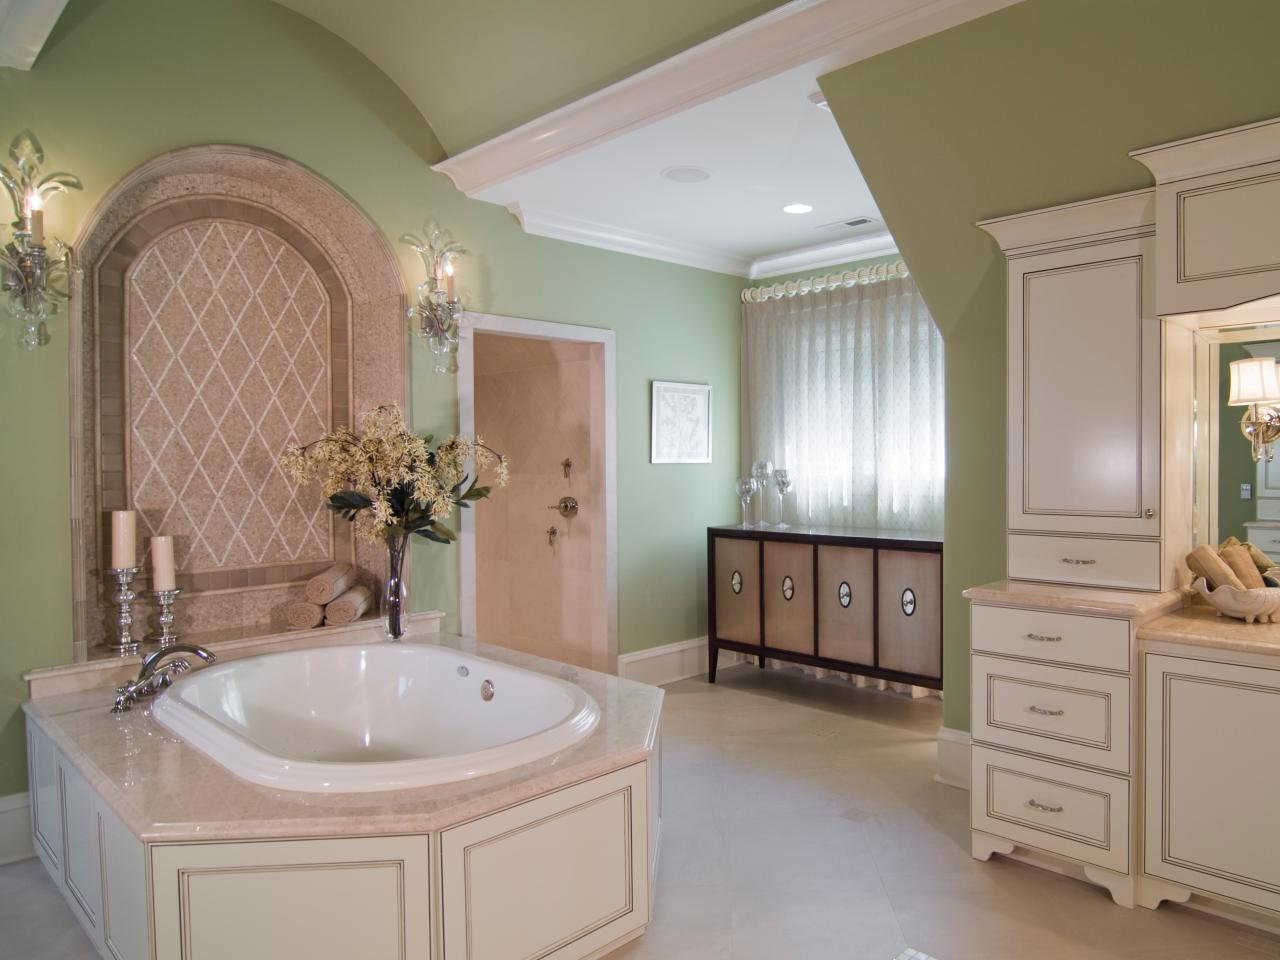 How to improve master bathroom designs in better way for Master bathroom ideas